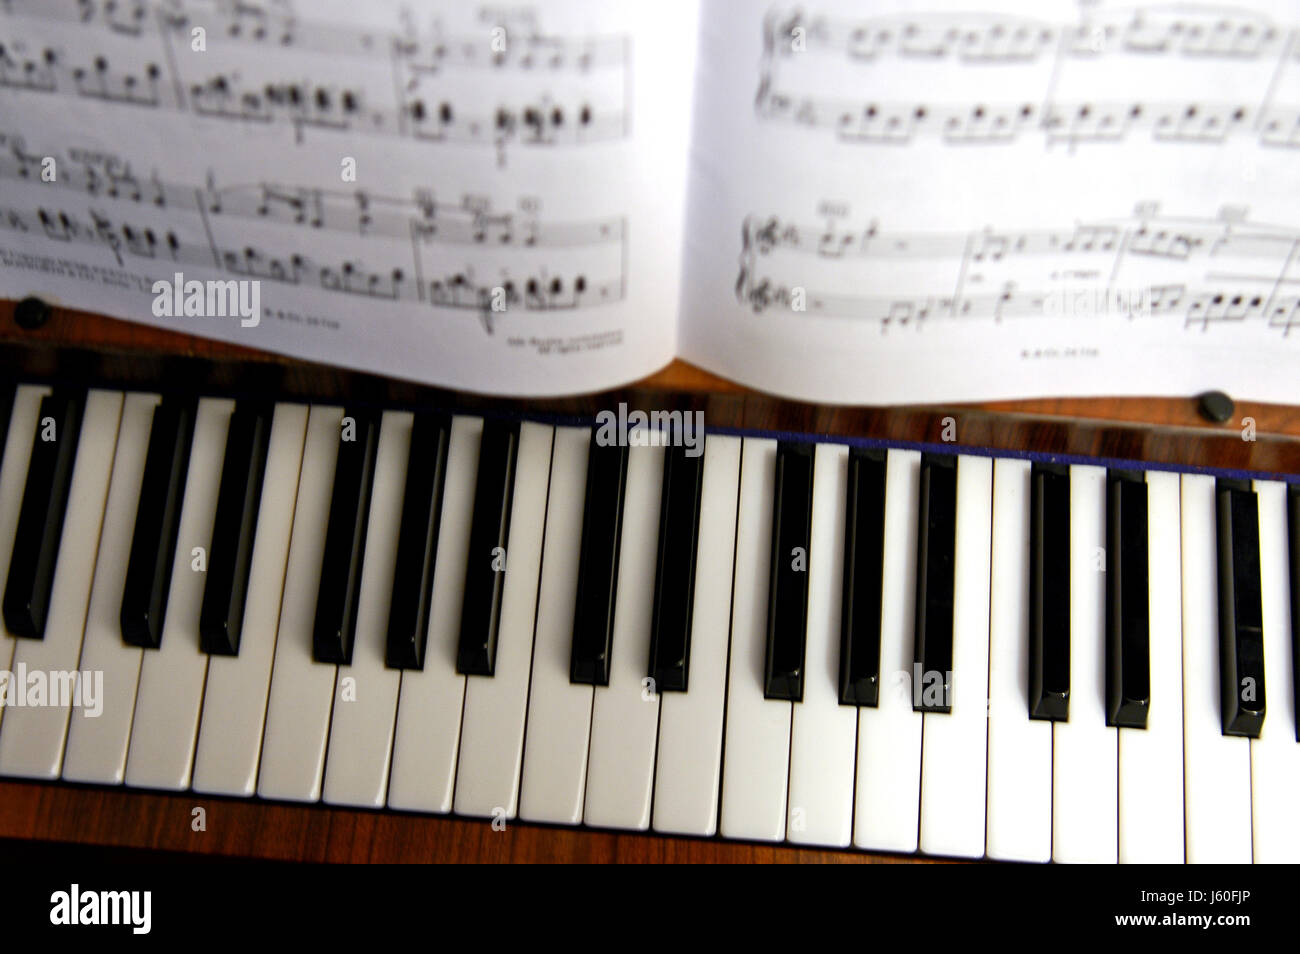 keyboard piano scale sound musical instrument black swarthy jetblack deep black - Stock Image